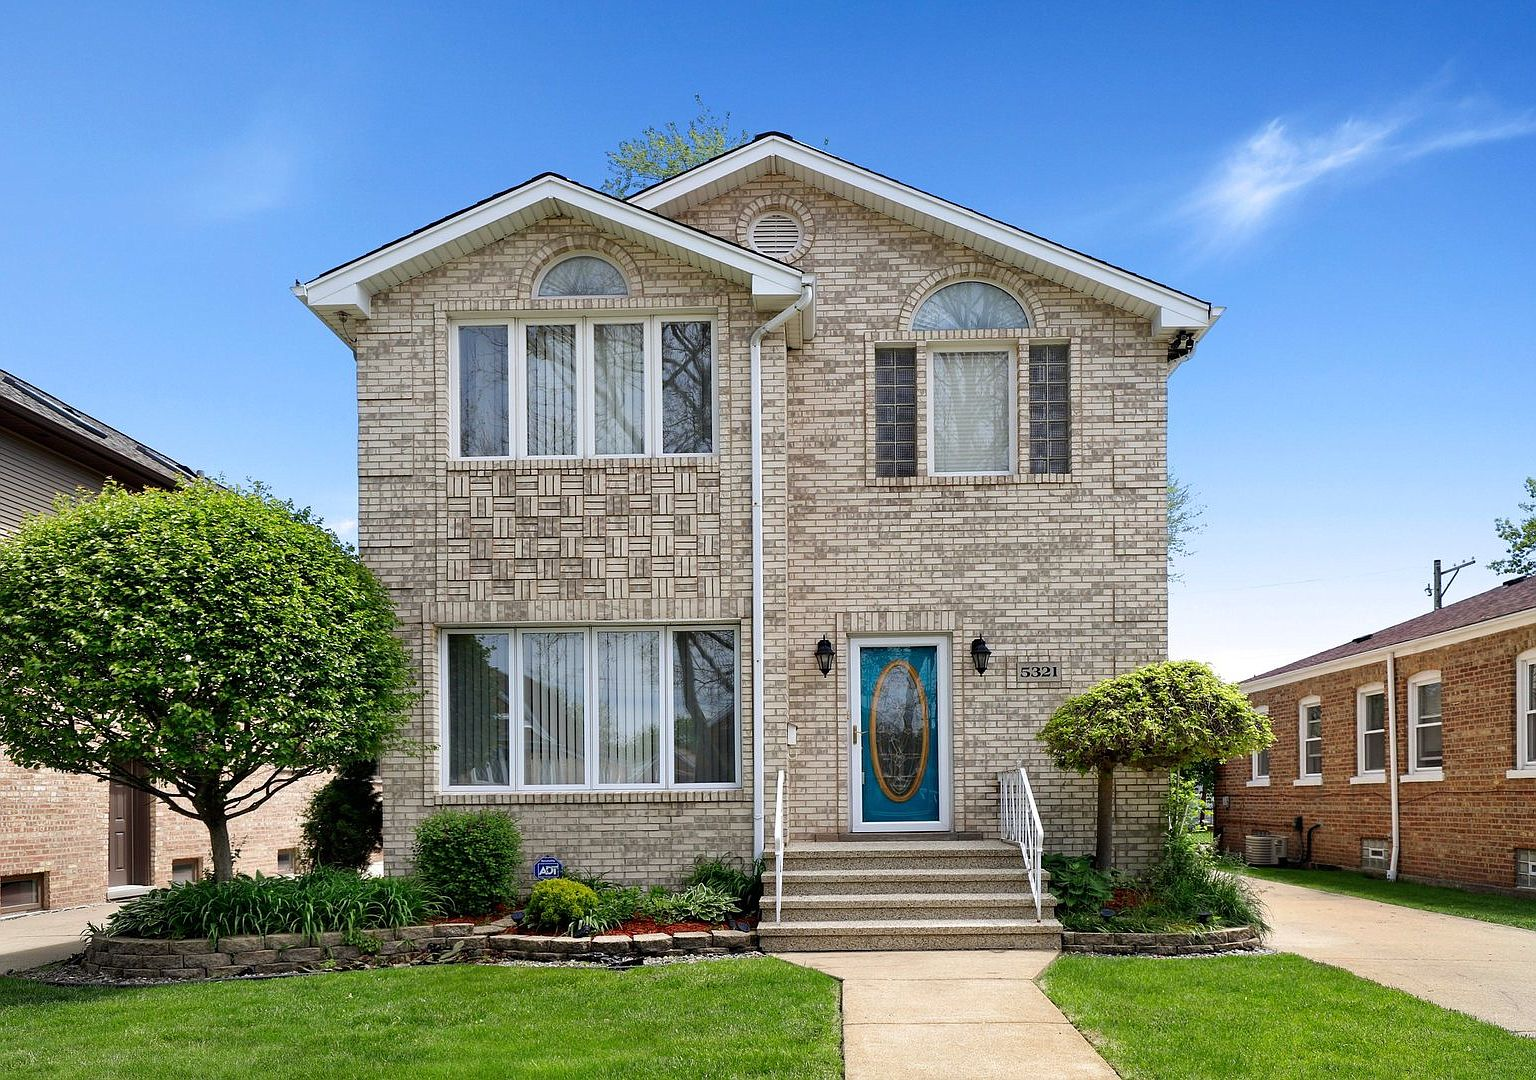 5321 S Normandy Ave Chicago Il 60638 Zillow